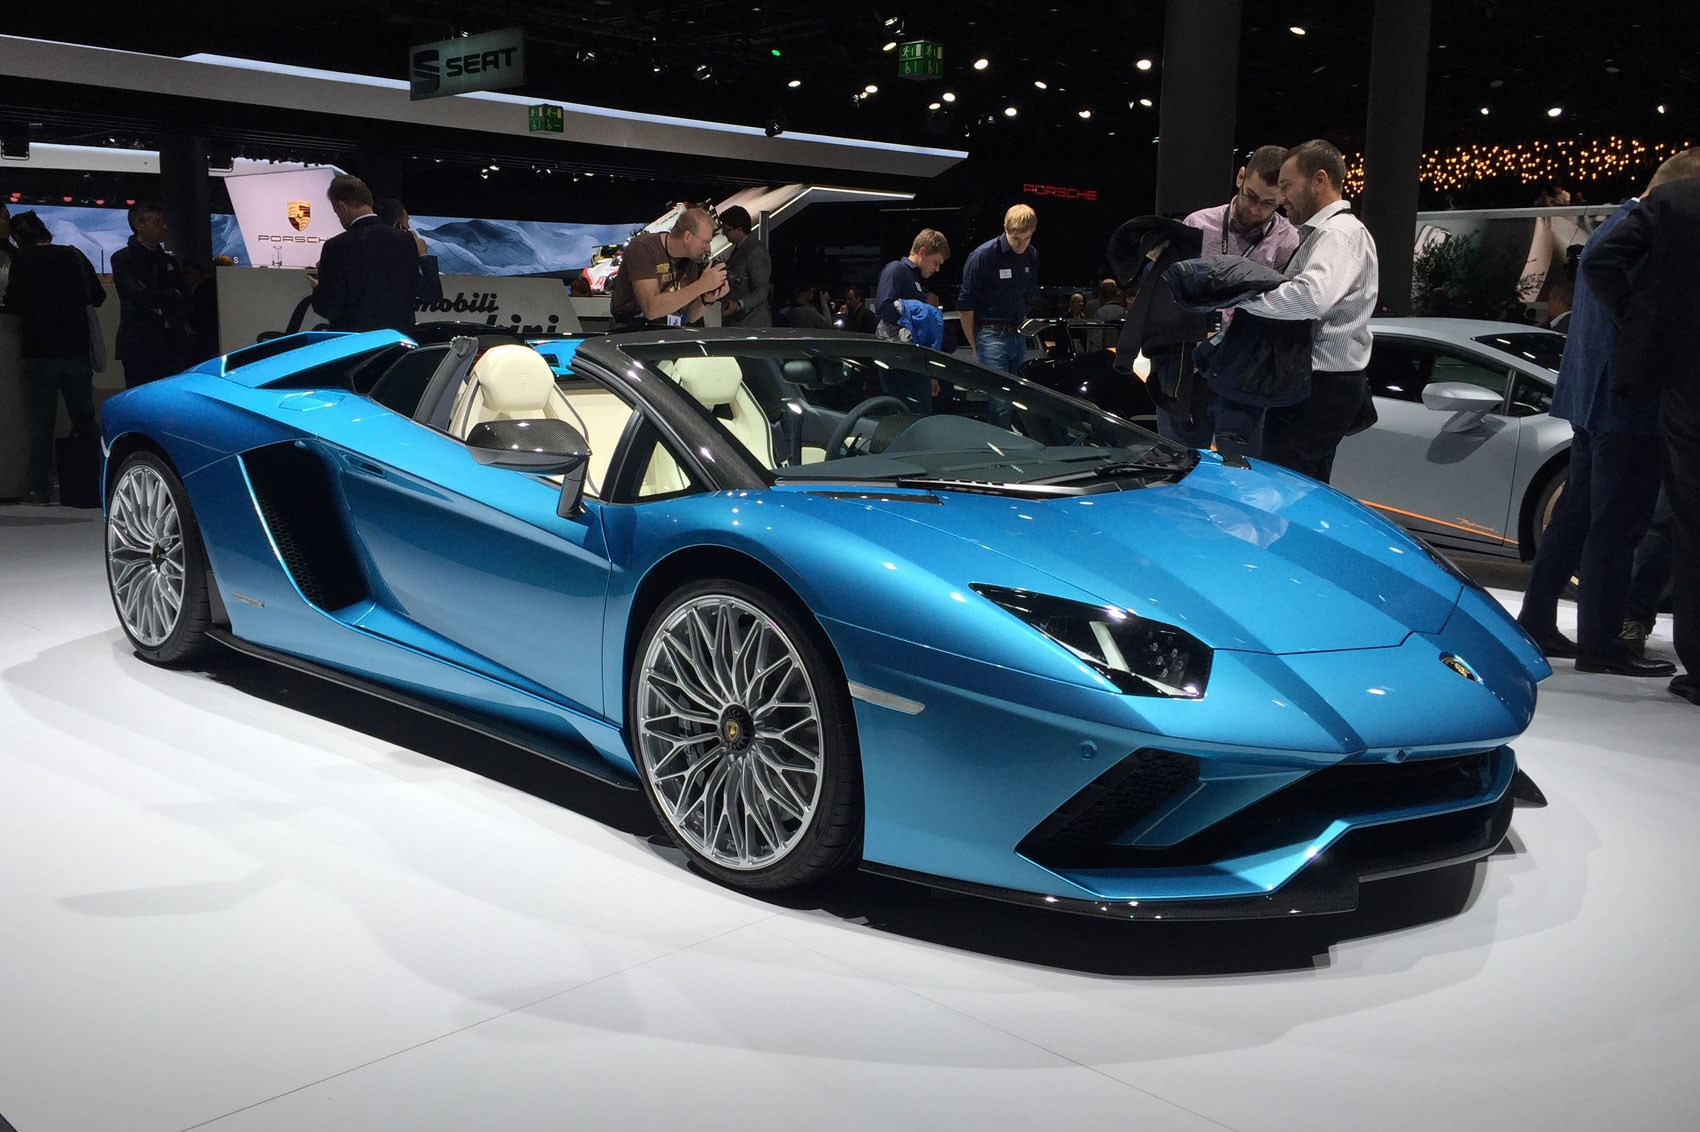 Lamborghini Aventador S Roadster At 2017 Frankfurt Motor Show Pictures Prices Specs Car Magazine